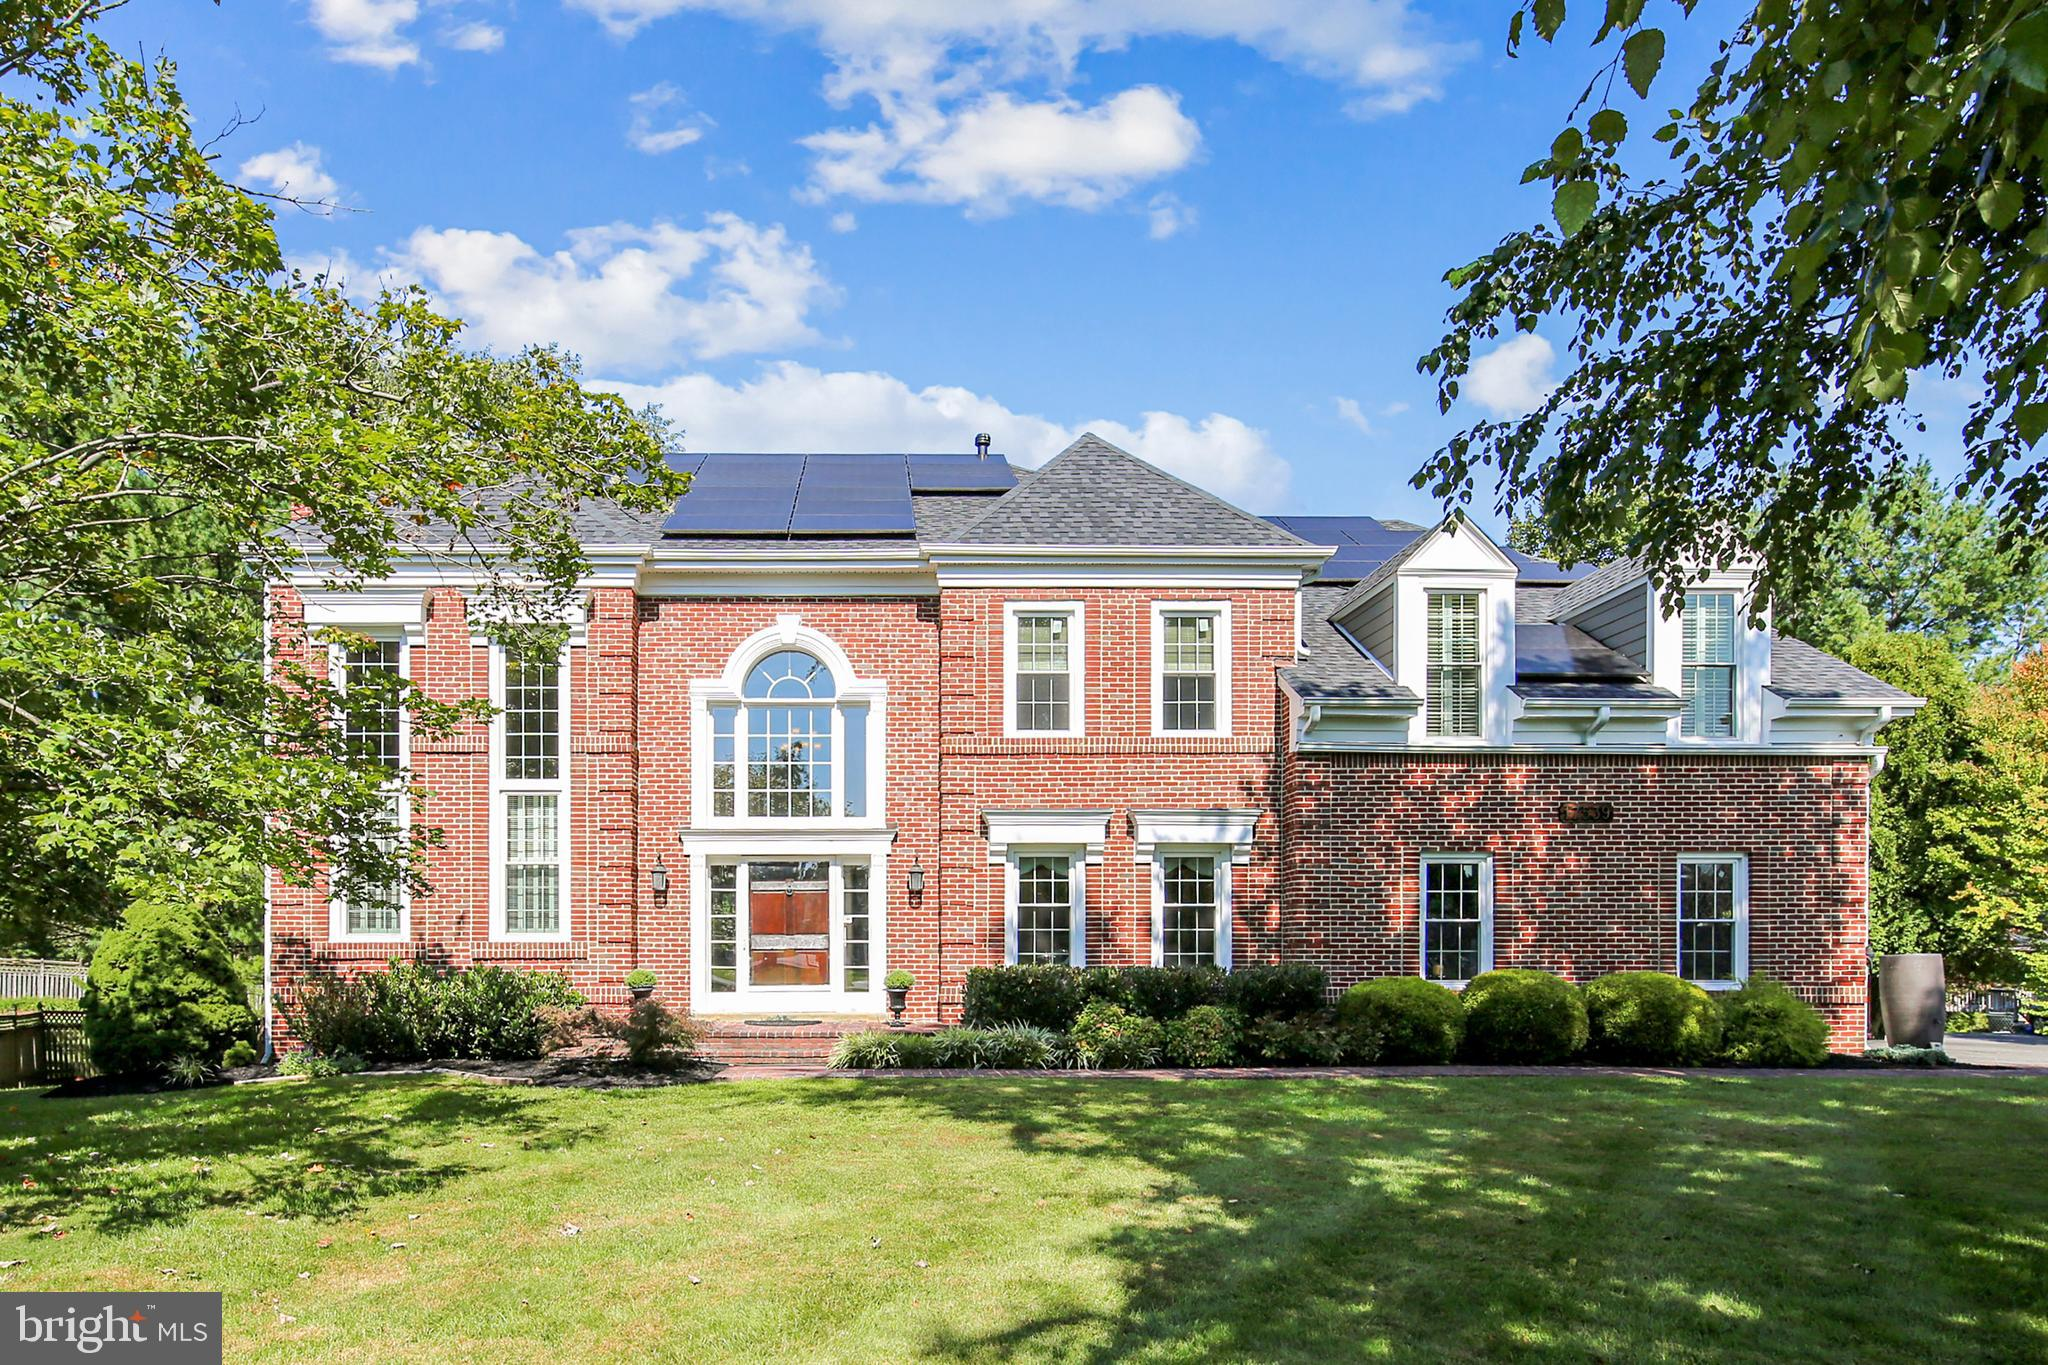 Welcome to this fantastic energy efficient 4 Bedroom 4.5 Bath contemporary Colonial located in the b